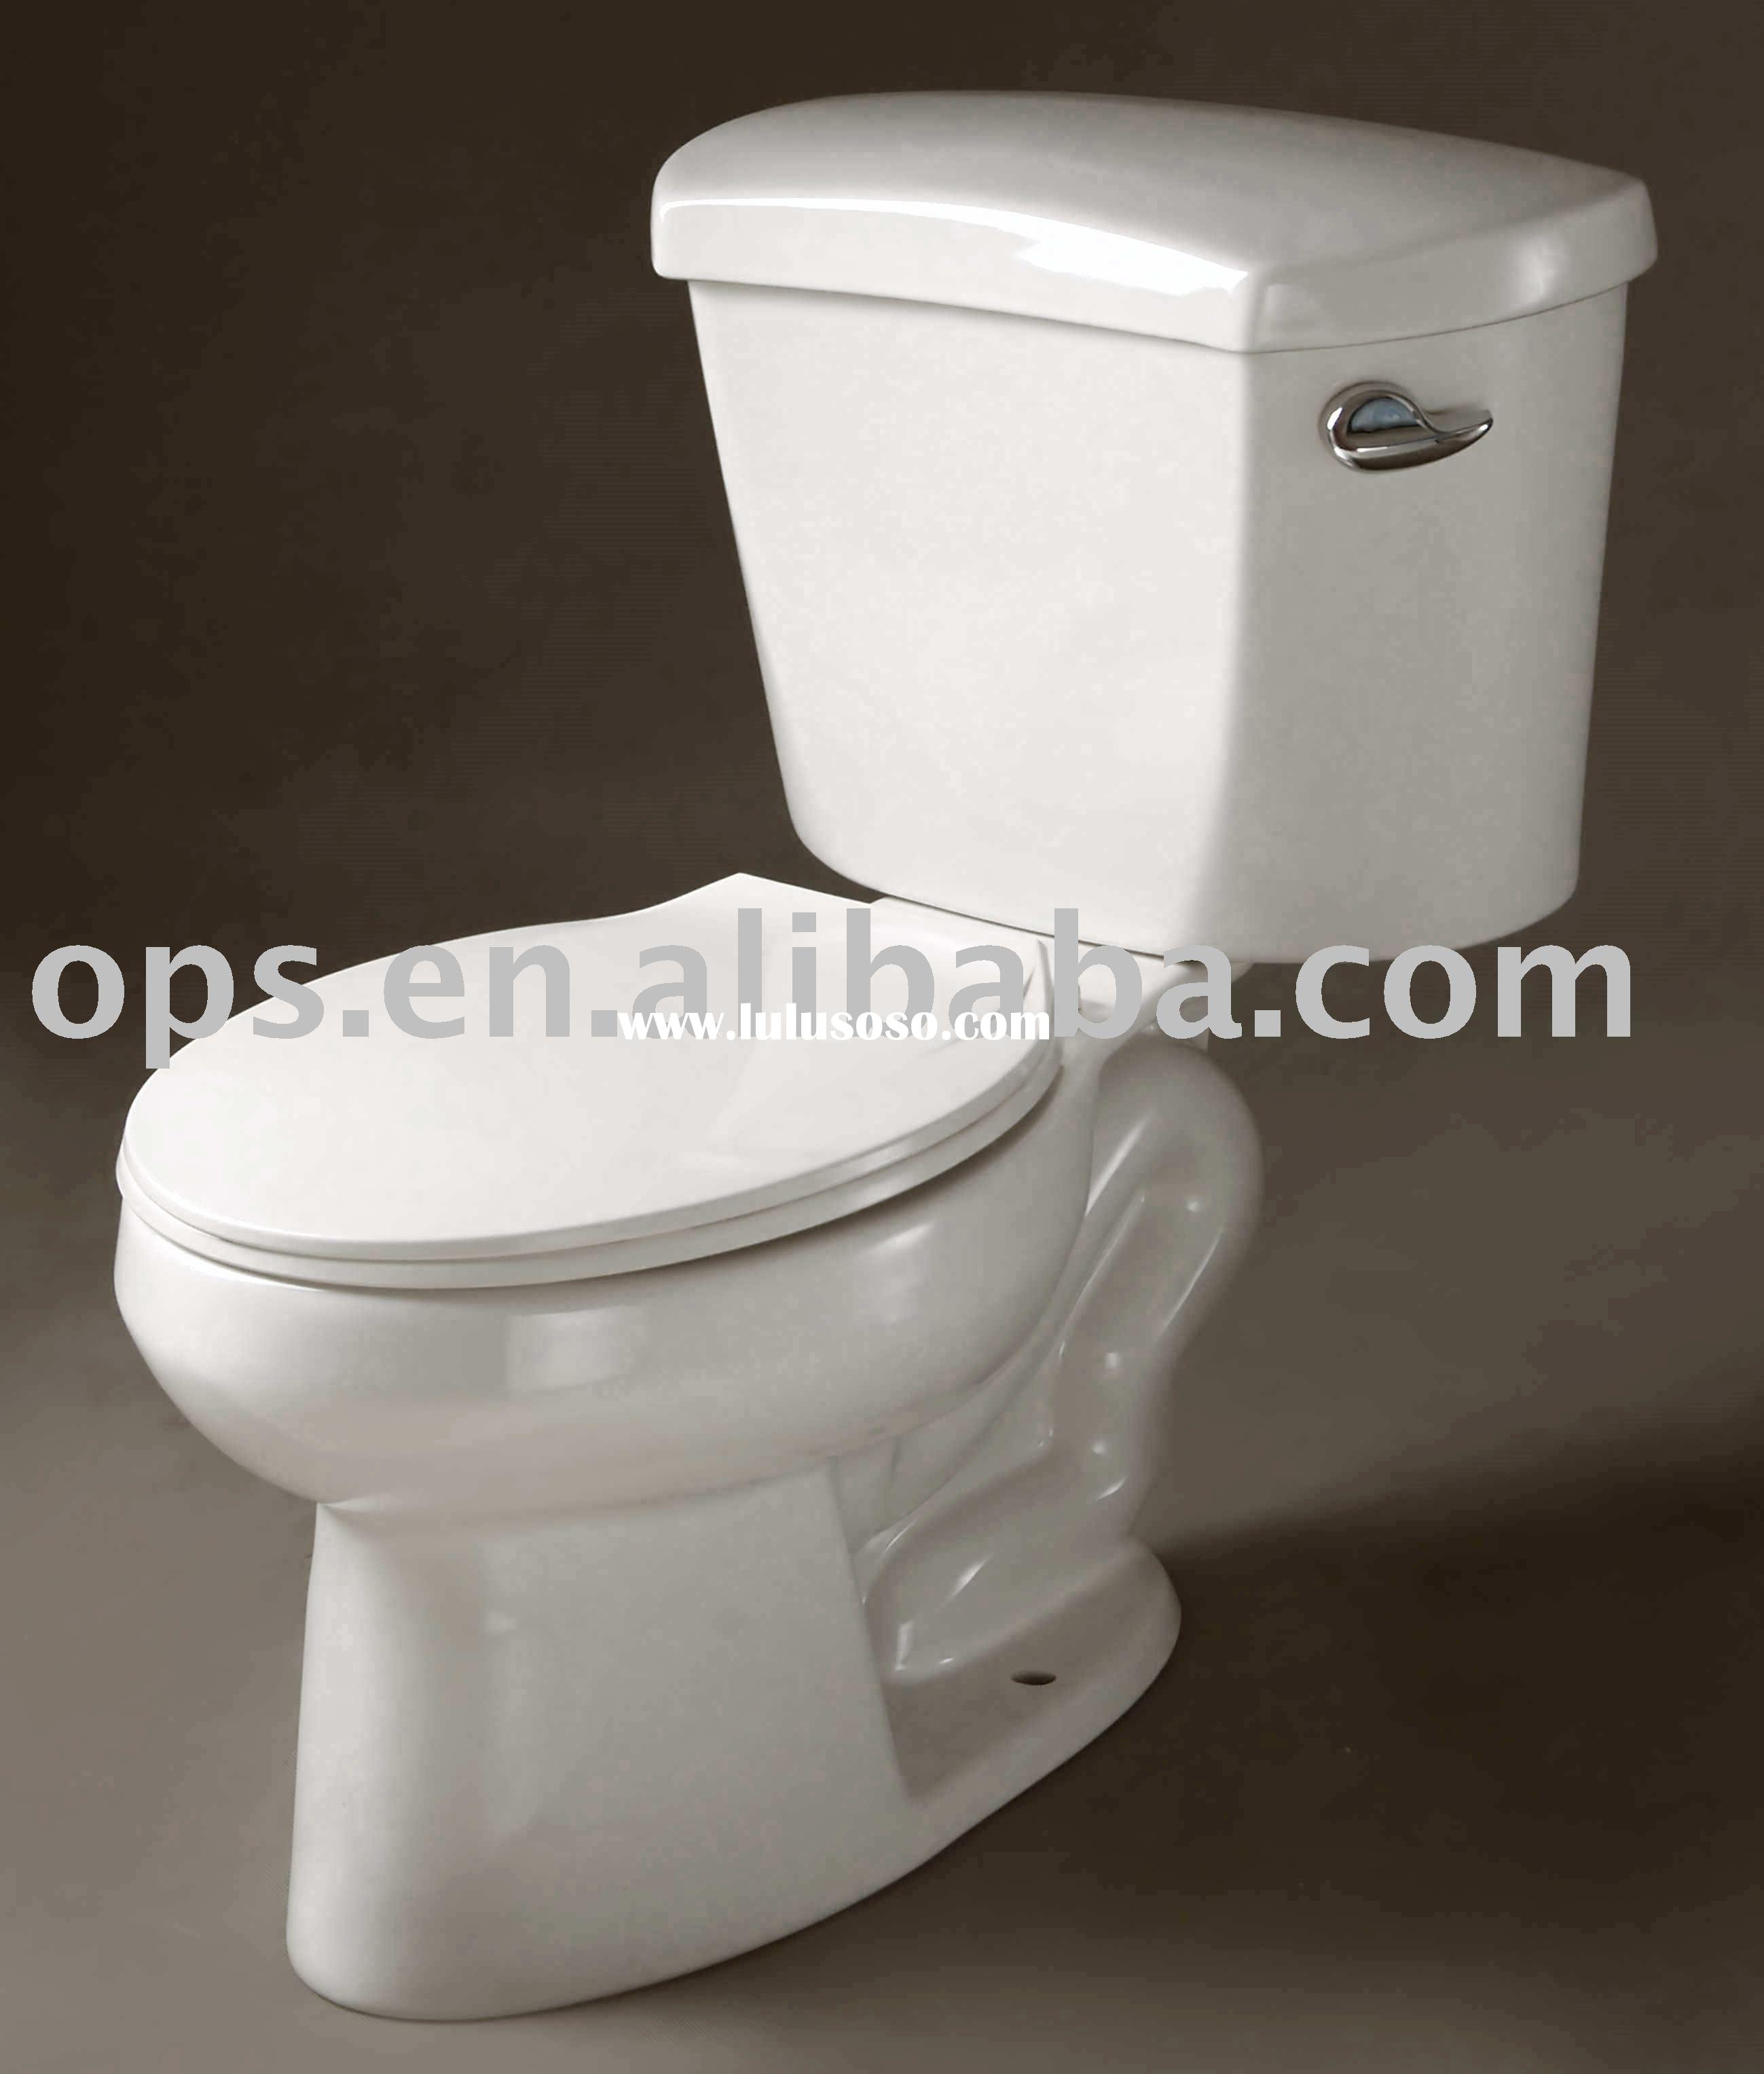 Black Ceramic Toilet Paper Holder Ceramic Two Piece Toilet Upc And Cupc Certified T X 6810en